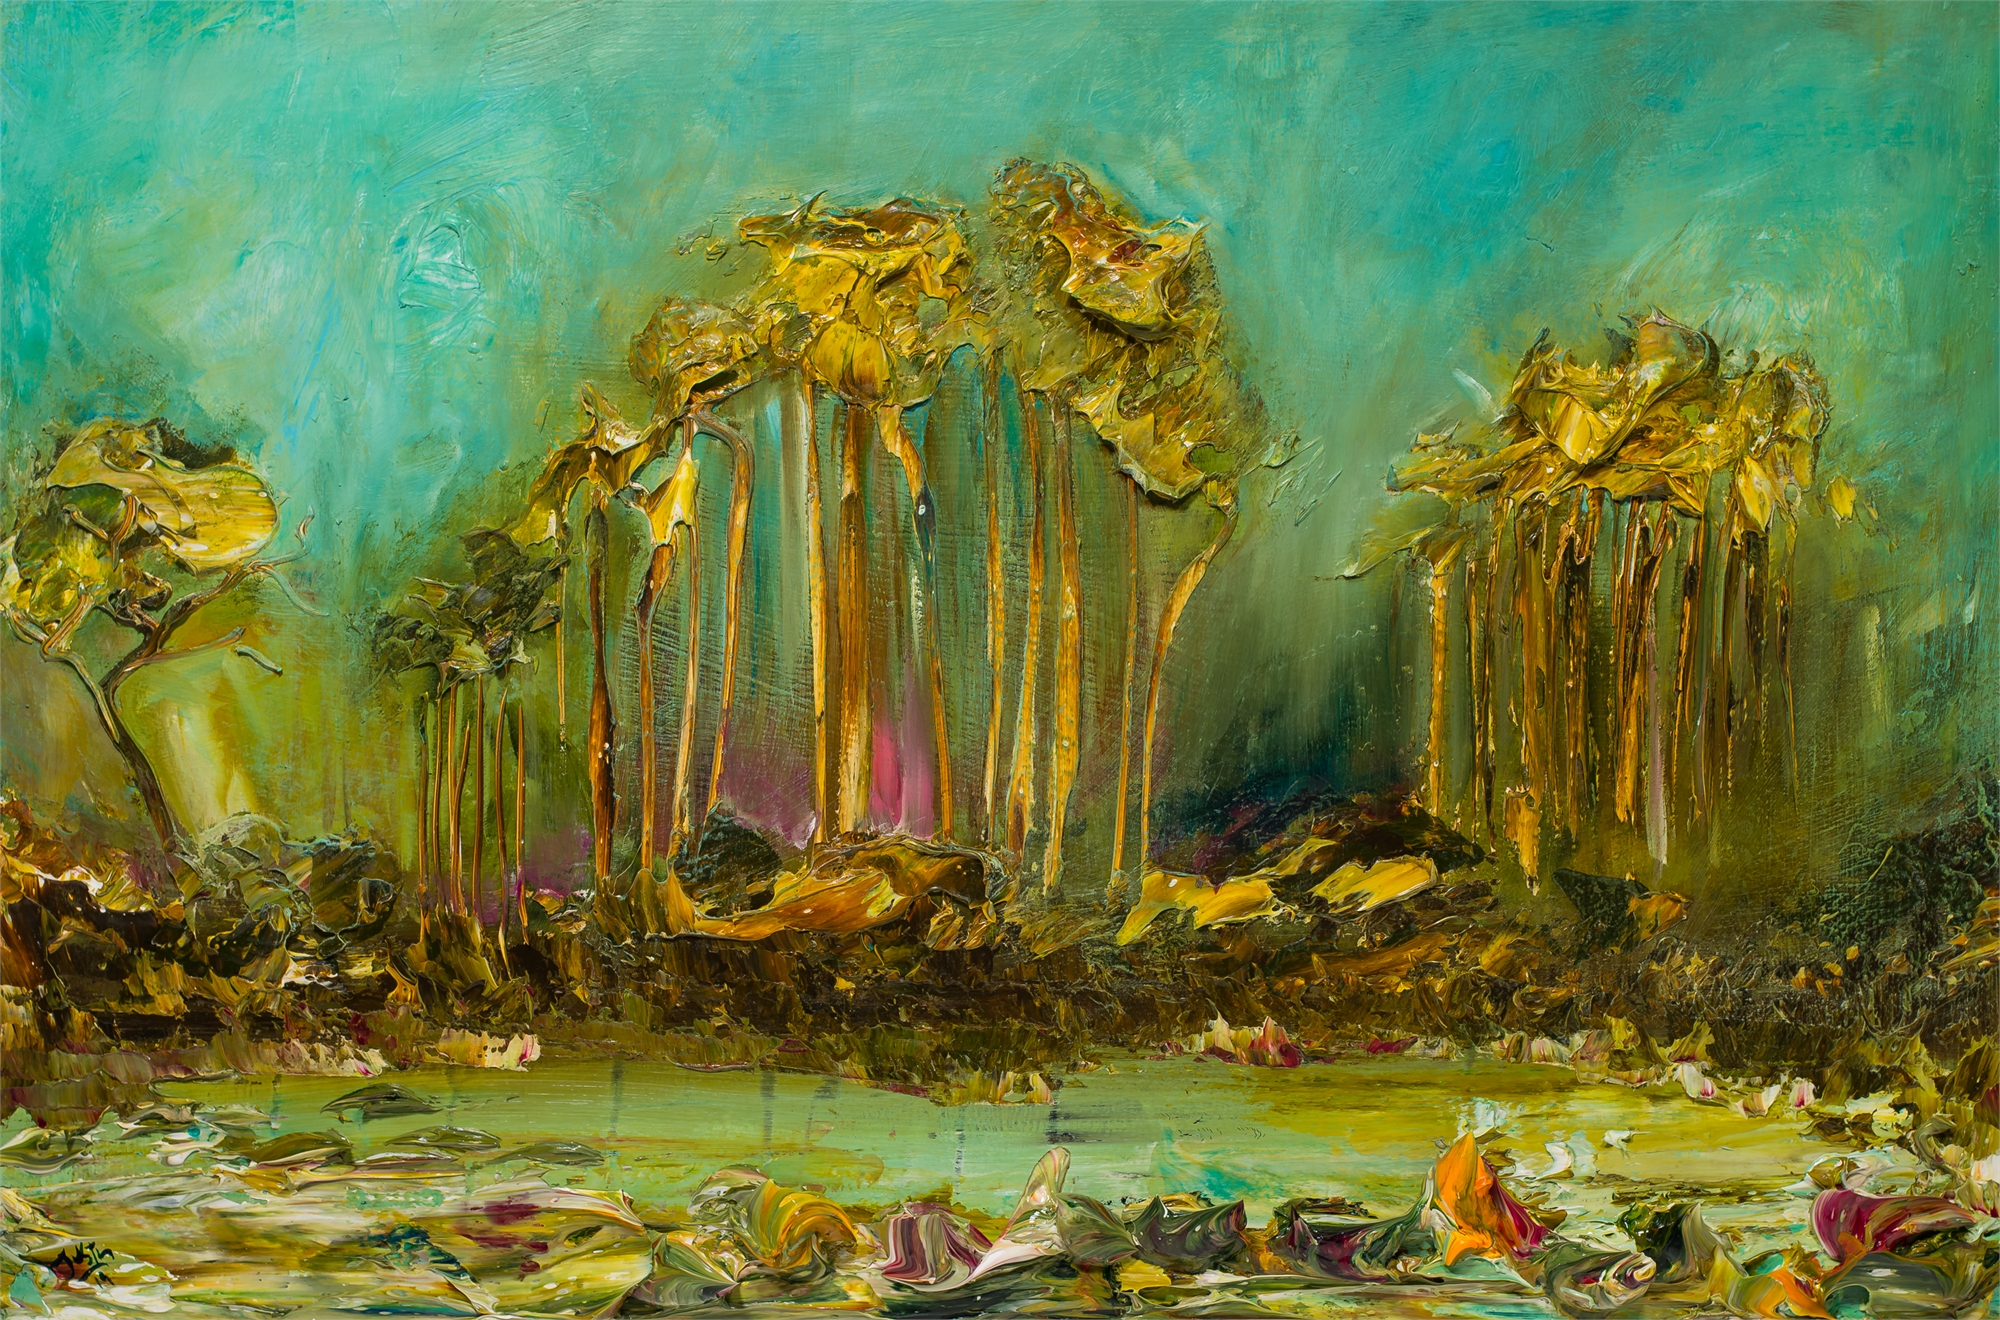 LAKESCAPE LS36X24-2019-093 by Justin Gaffrey